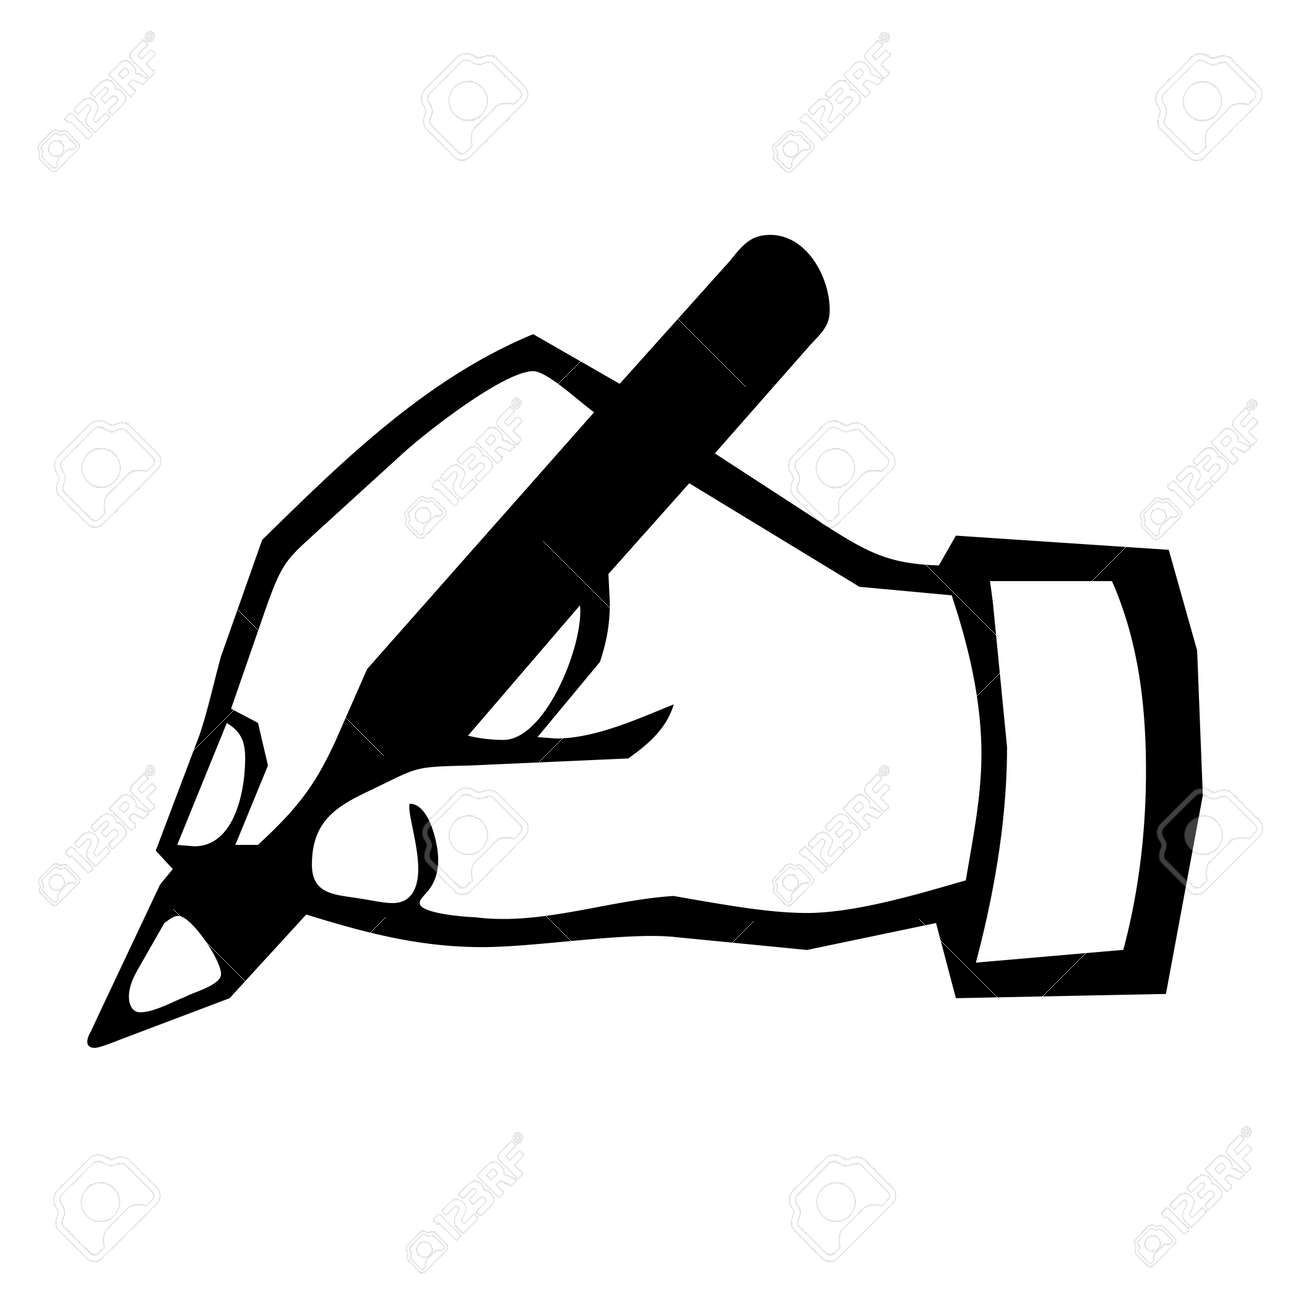 Hand Writing Icon Stock Photo, Picture And Royalty Free Image ...